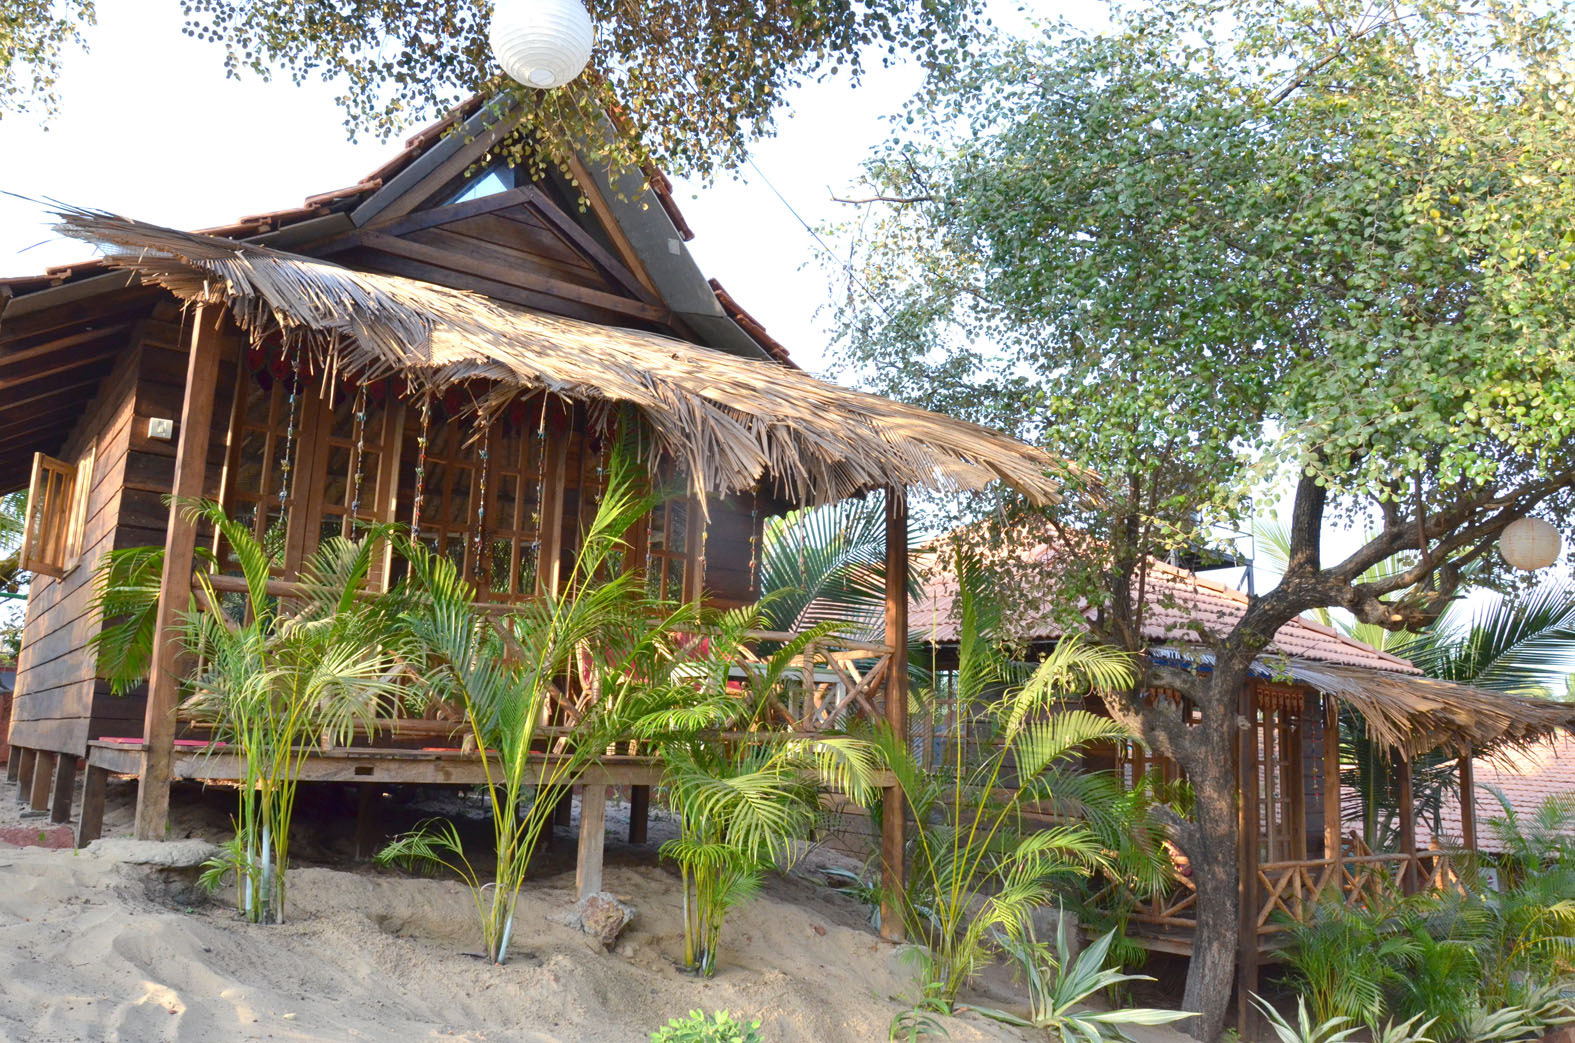 Awe Inspiring Information Of Little India Beach Cottage Goa Tropical Wooden Largest Home Design Picture Inspirations Pitcheantrous